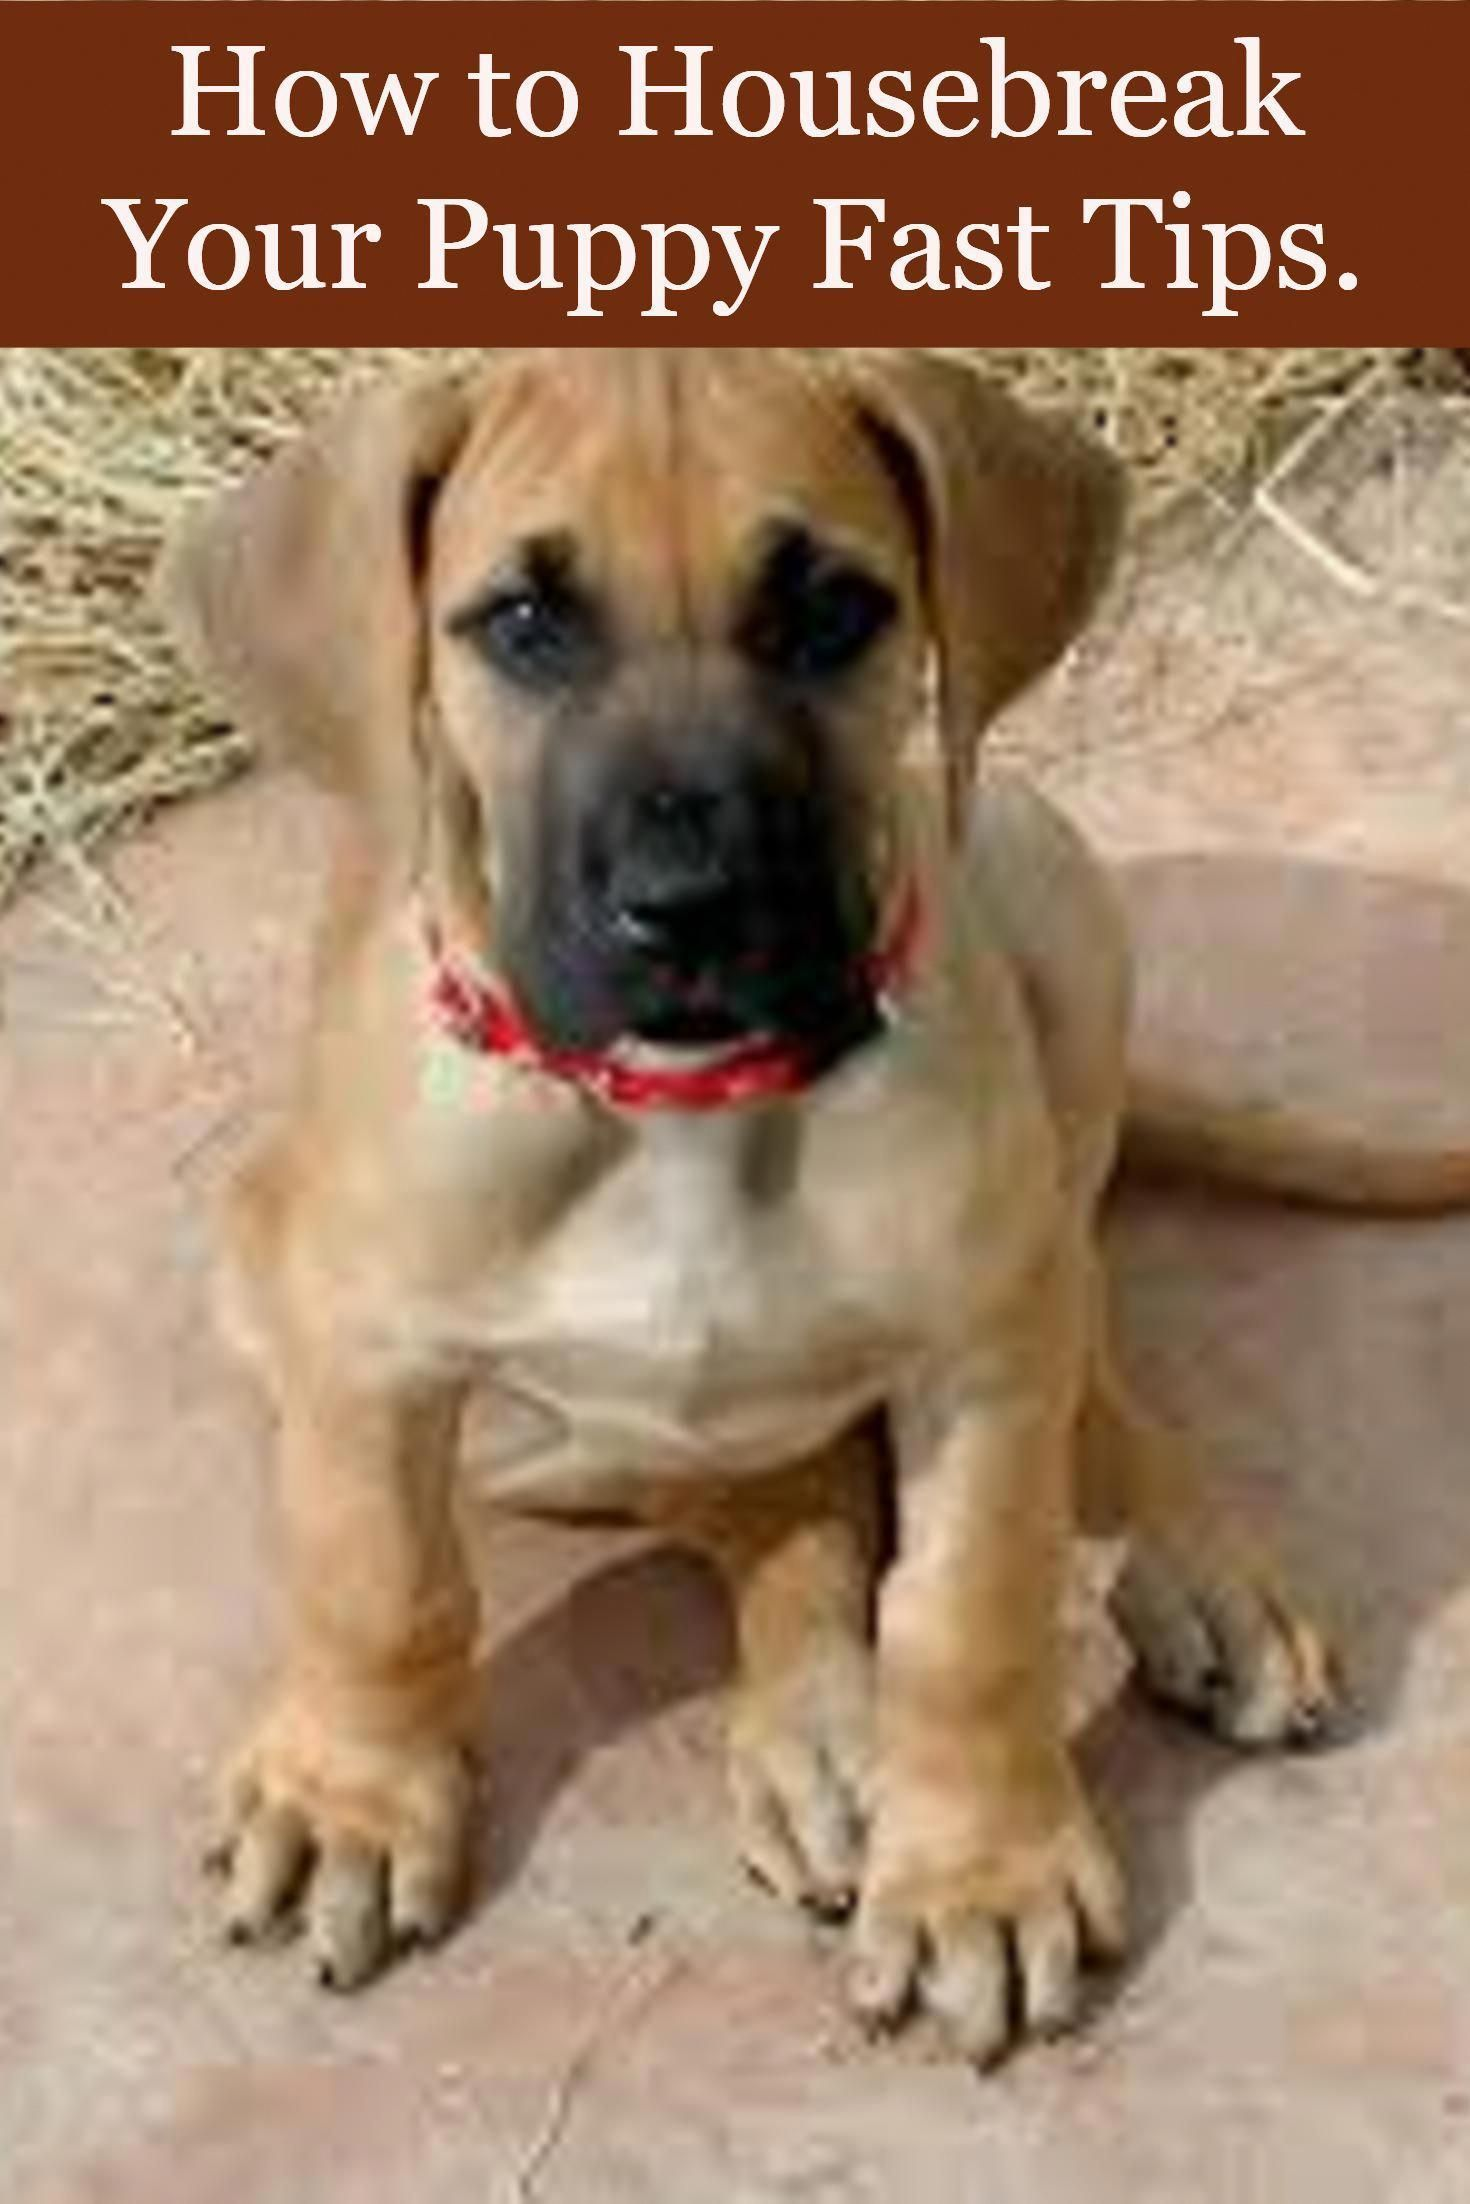 How To Housebreak Your Puppy Fast Tips How To Housebreak A Puppy